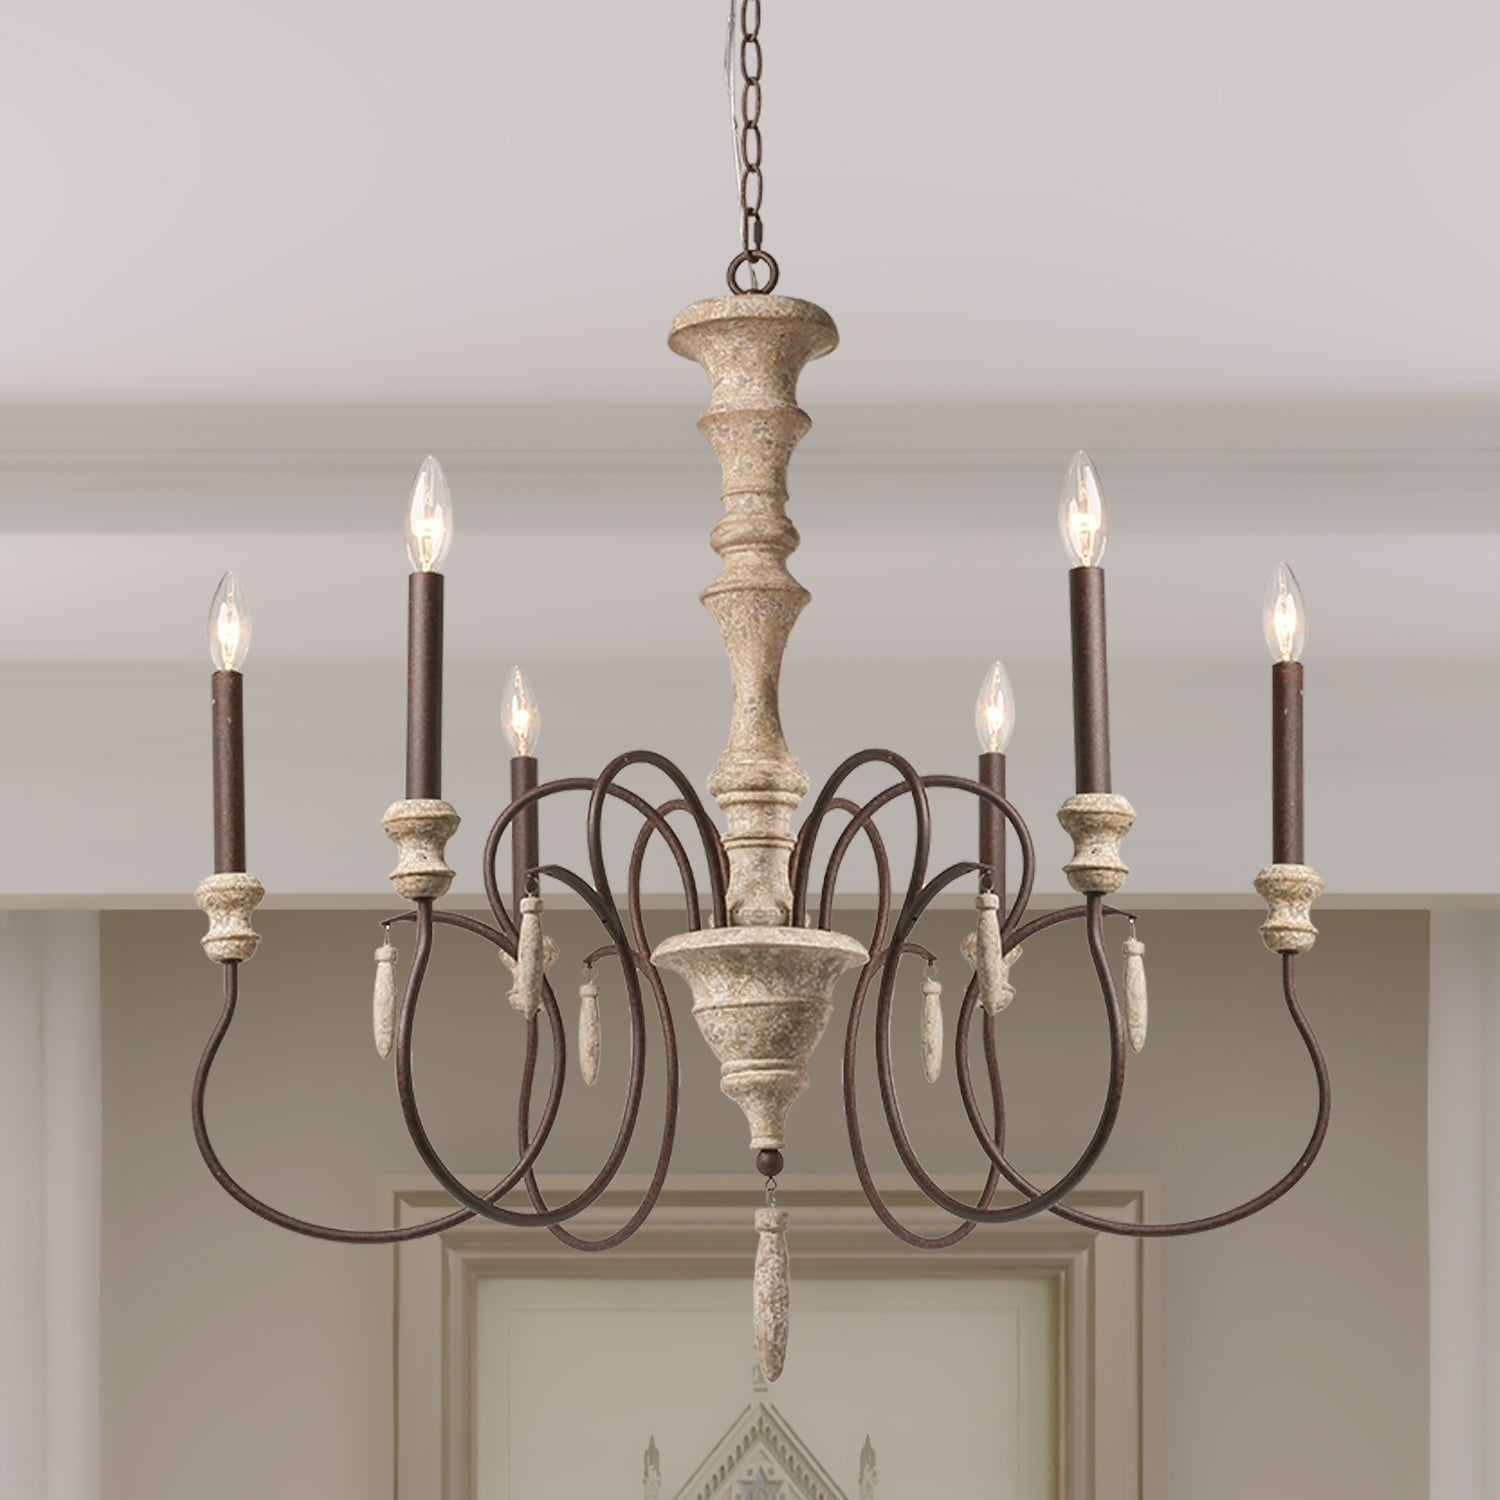 The Gray Barn Le View 6 Light Shabby Chic French Country Wooden Chandelier Lighting